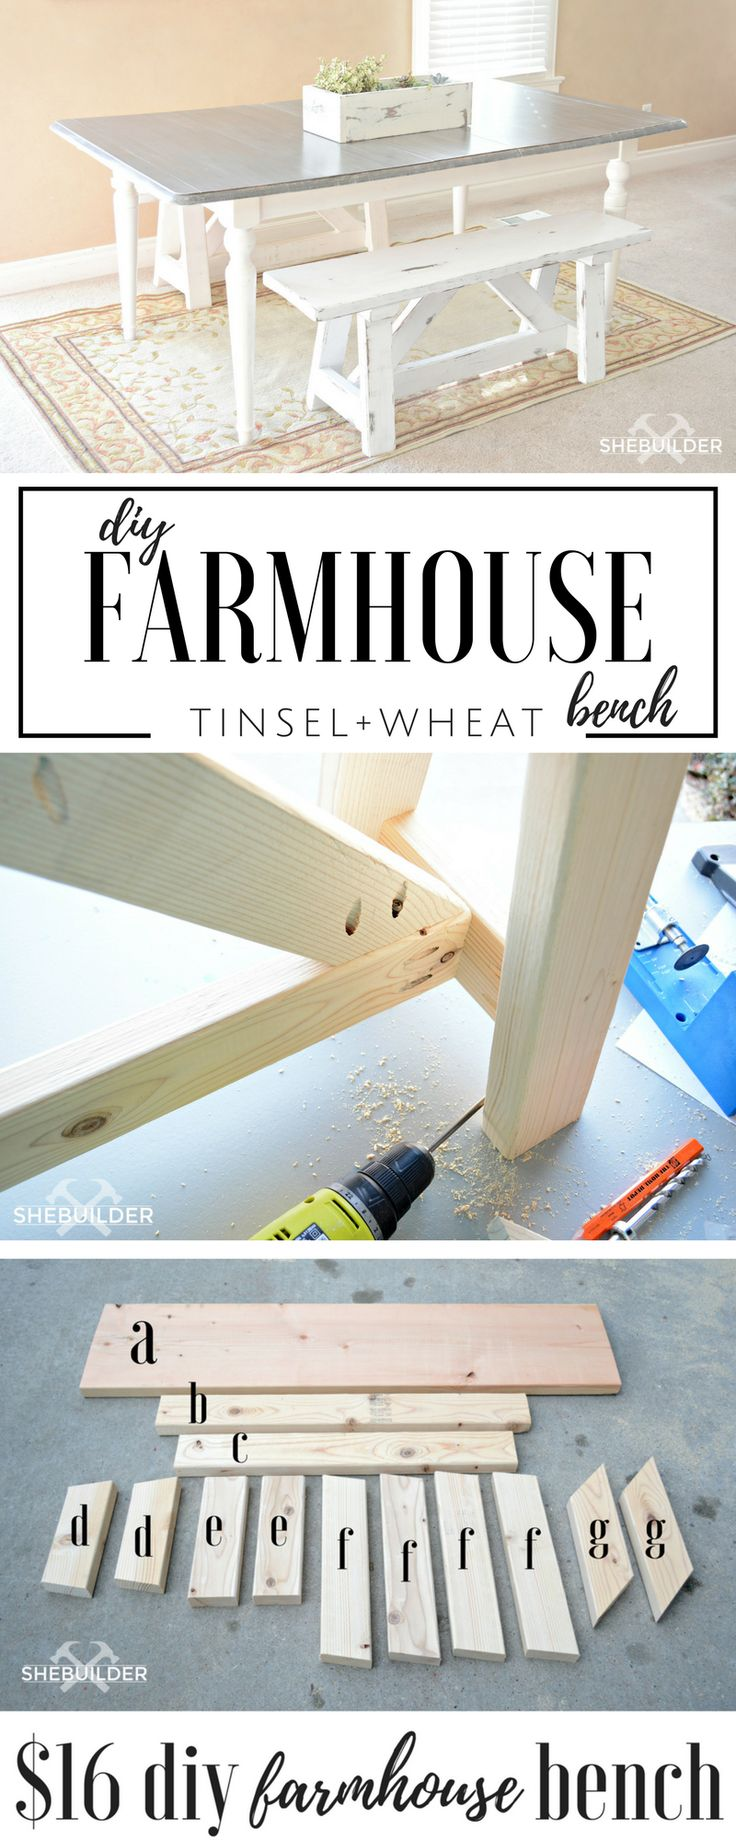 Build your very own farmhouse bench by following these step by step pictures and instructions. Its easier than you may think!